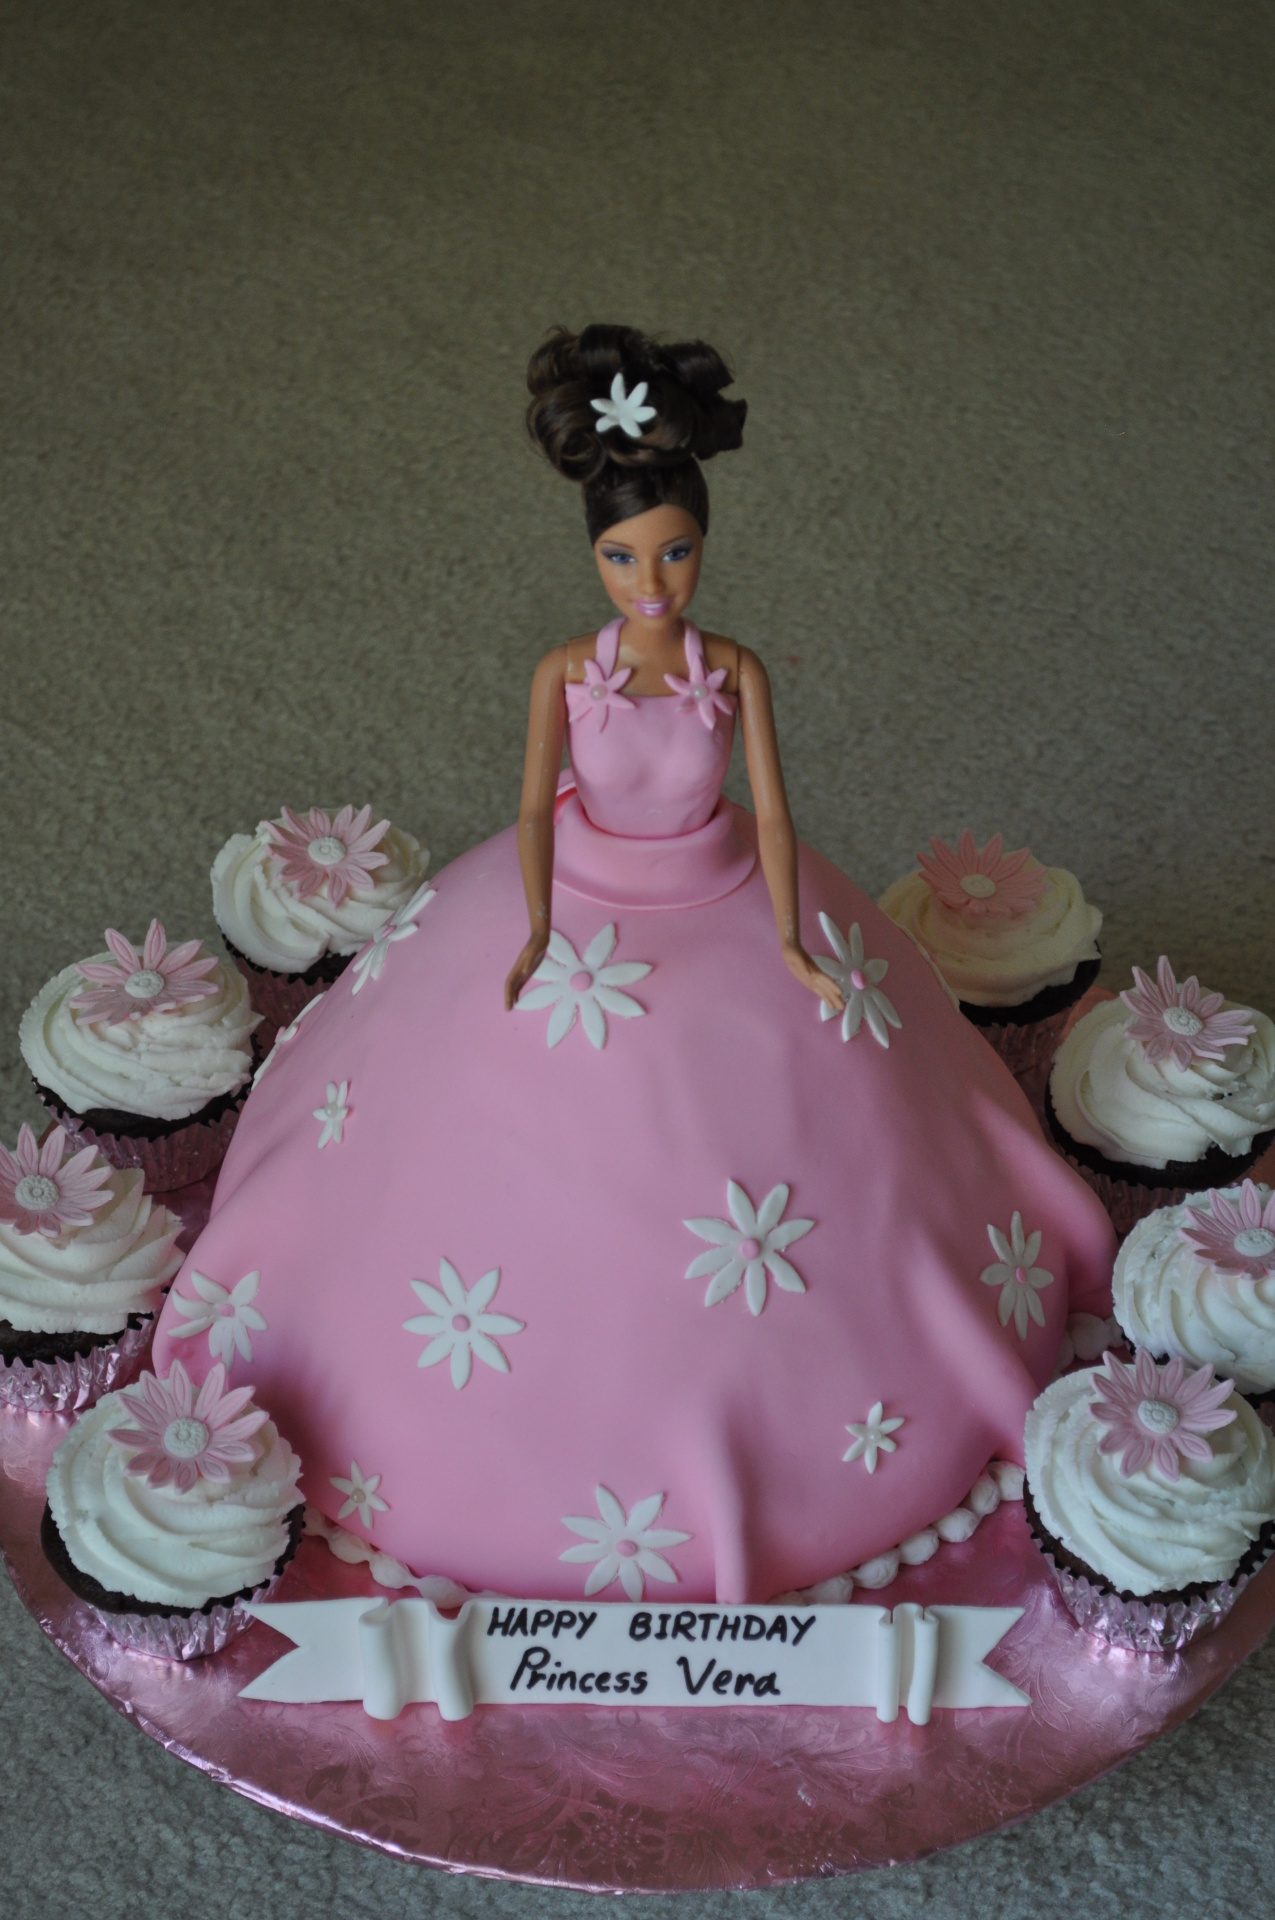 Barbie doll cake with cupcakes